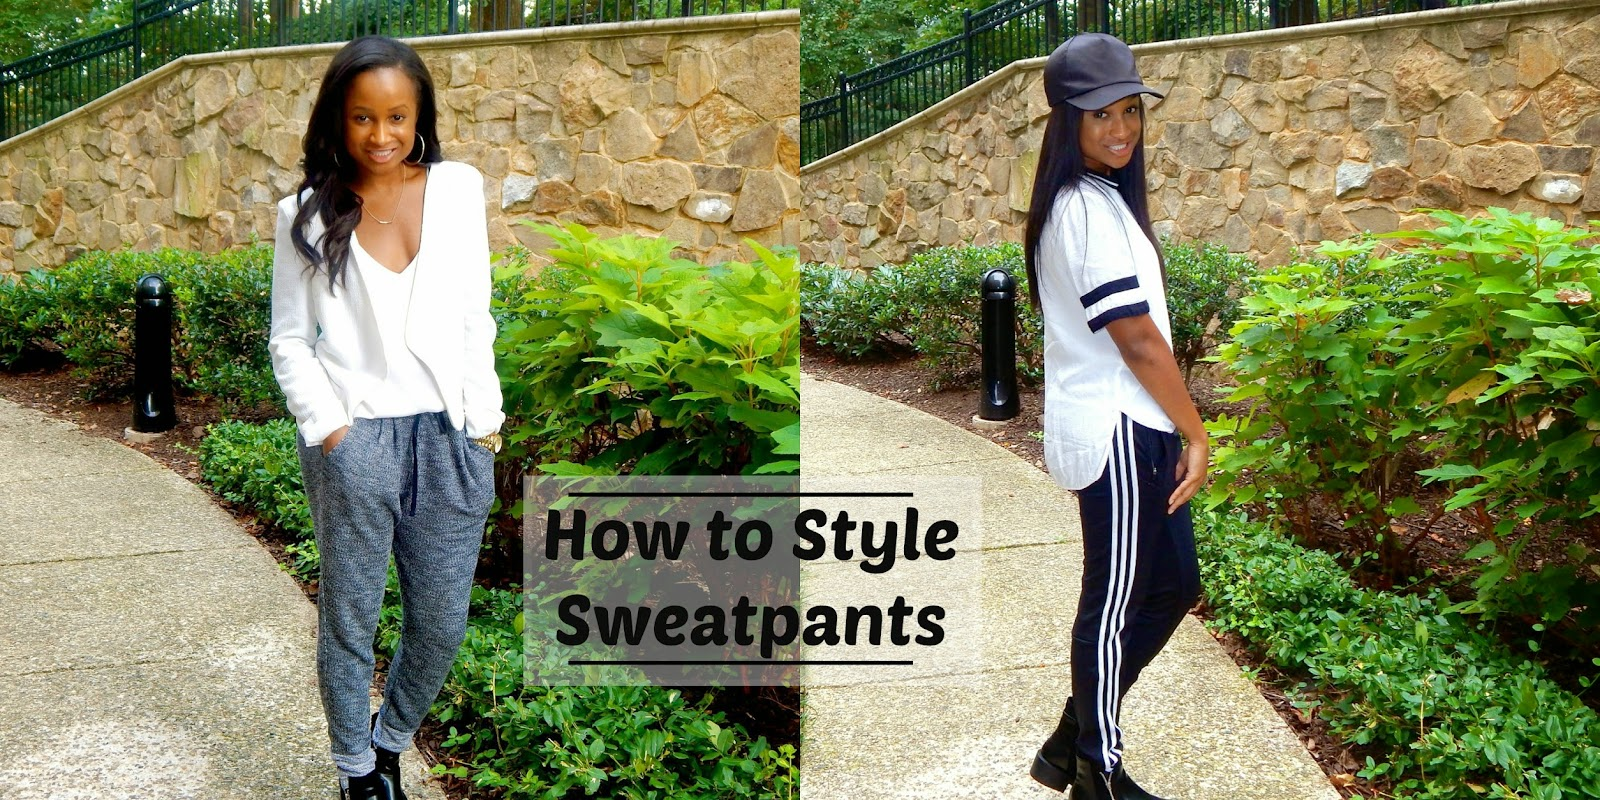 How to style sweats